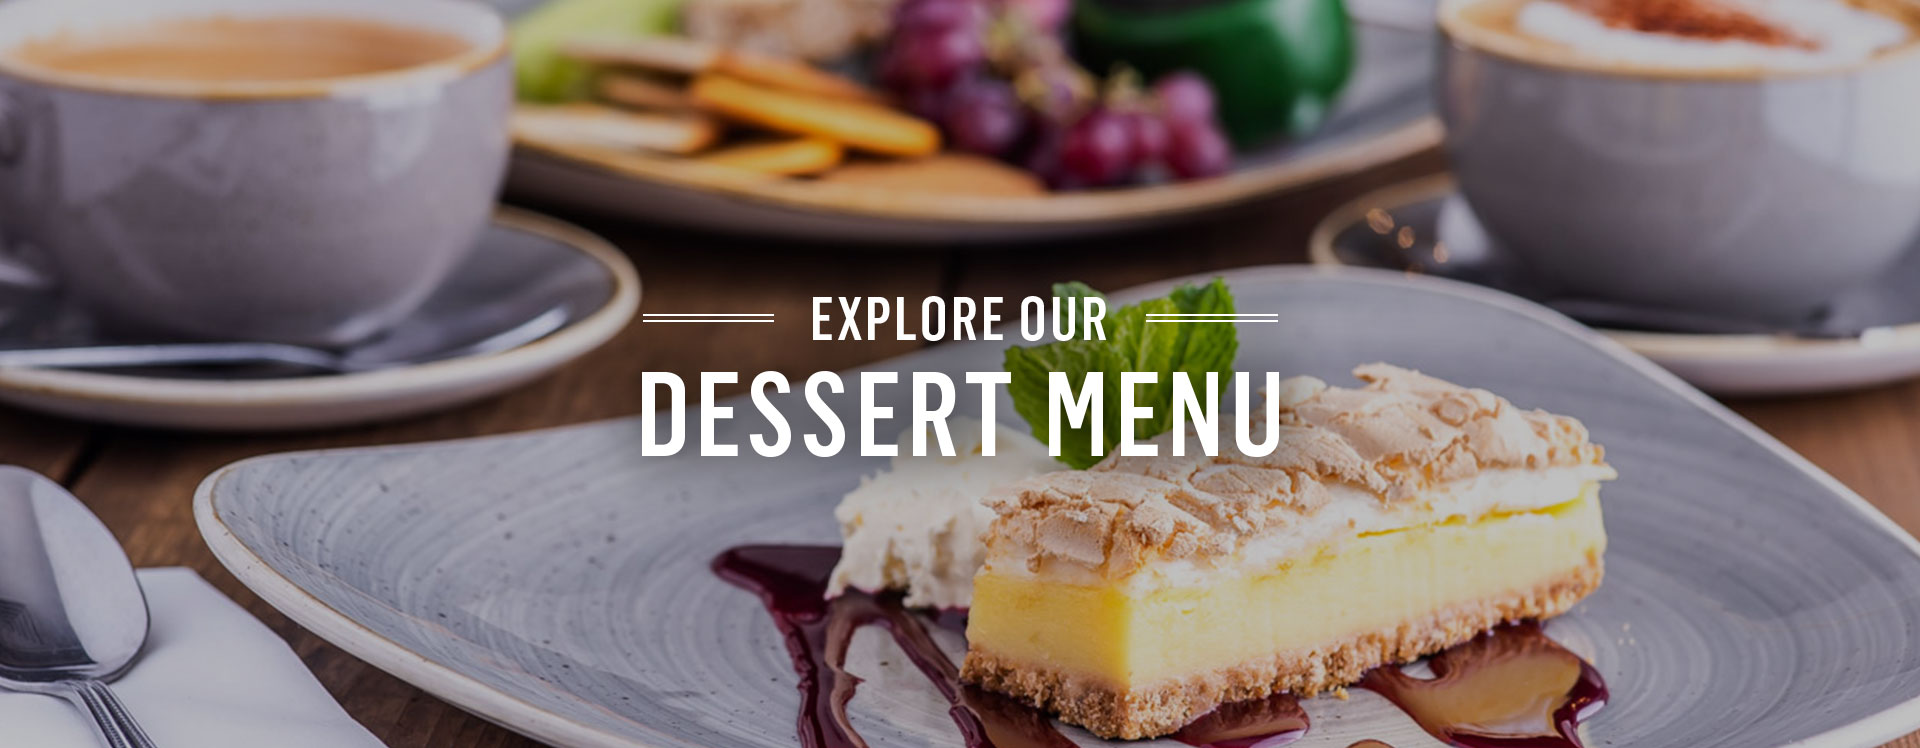 Dessert menu at The Mitre Bar - Book a table